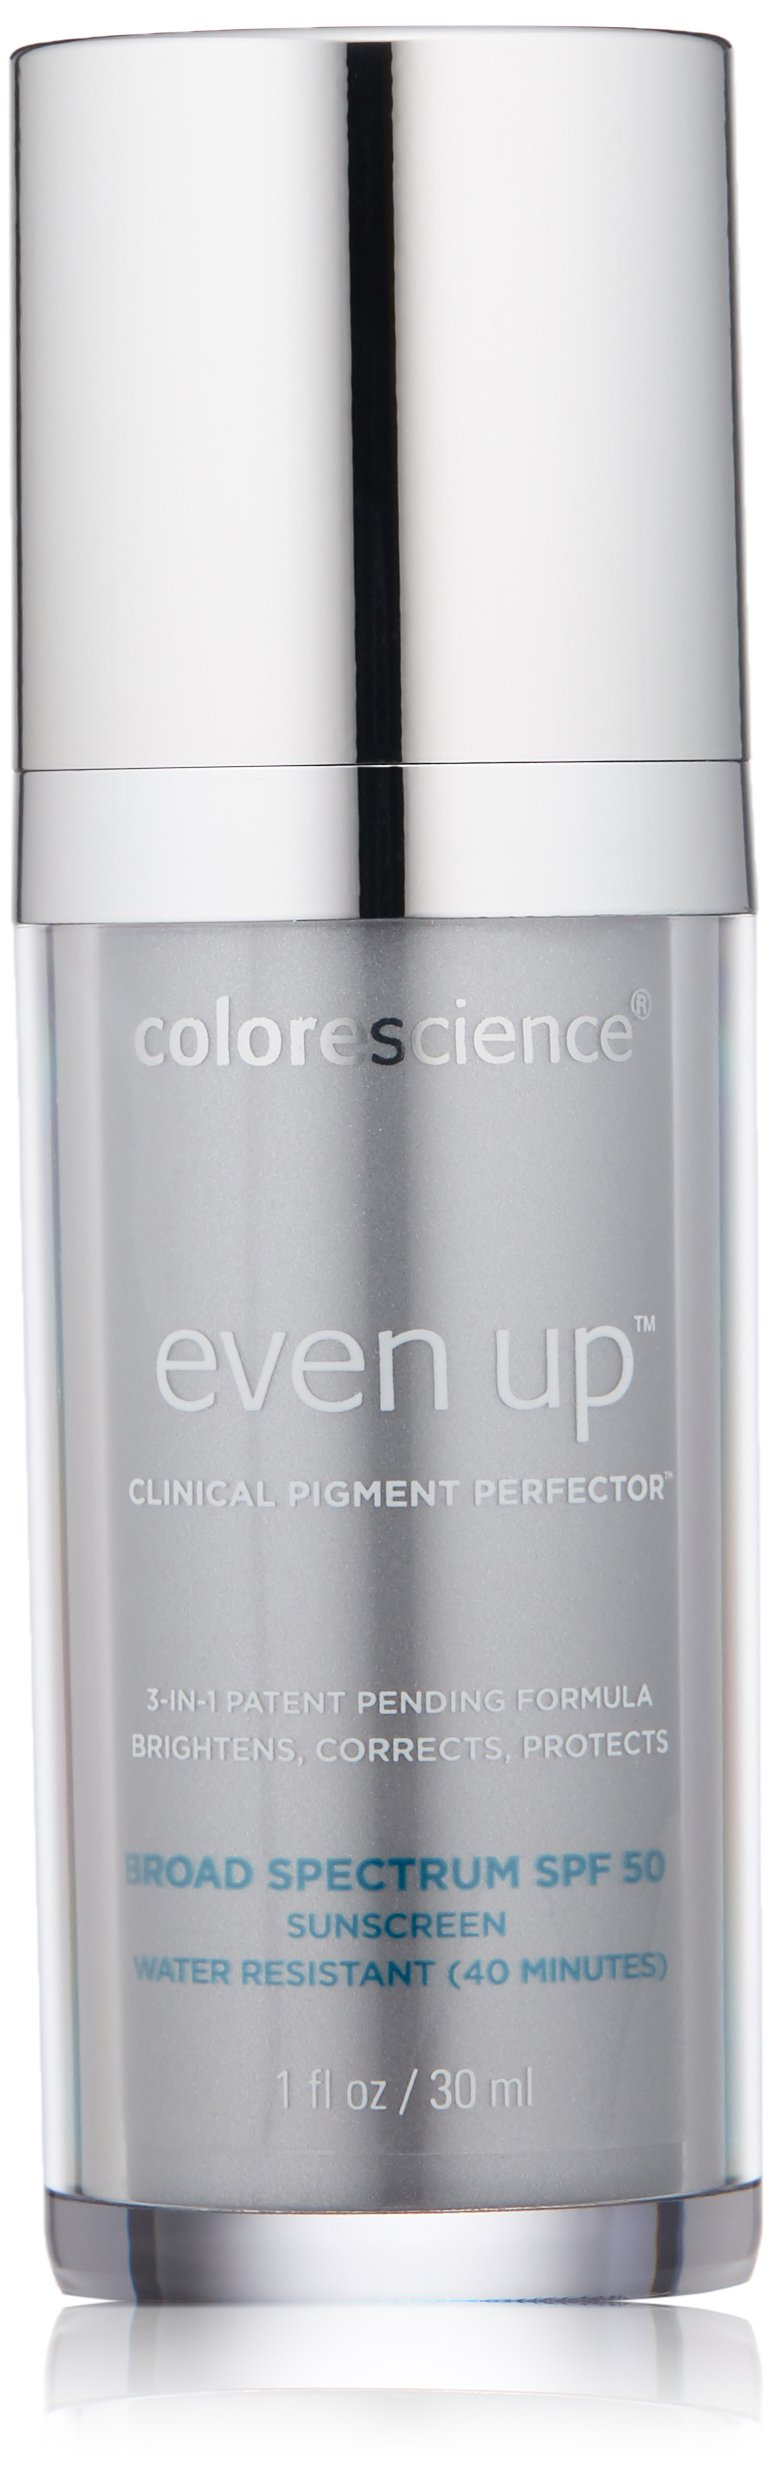 Colorescience Even Up Clinical SPF 50 Pigment Perfector Primer, 1 fl. oz